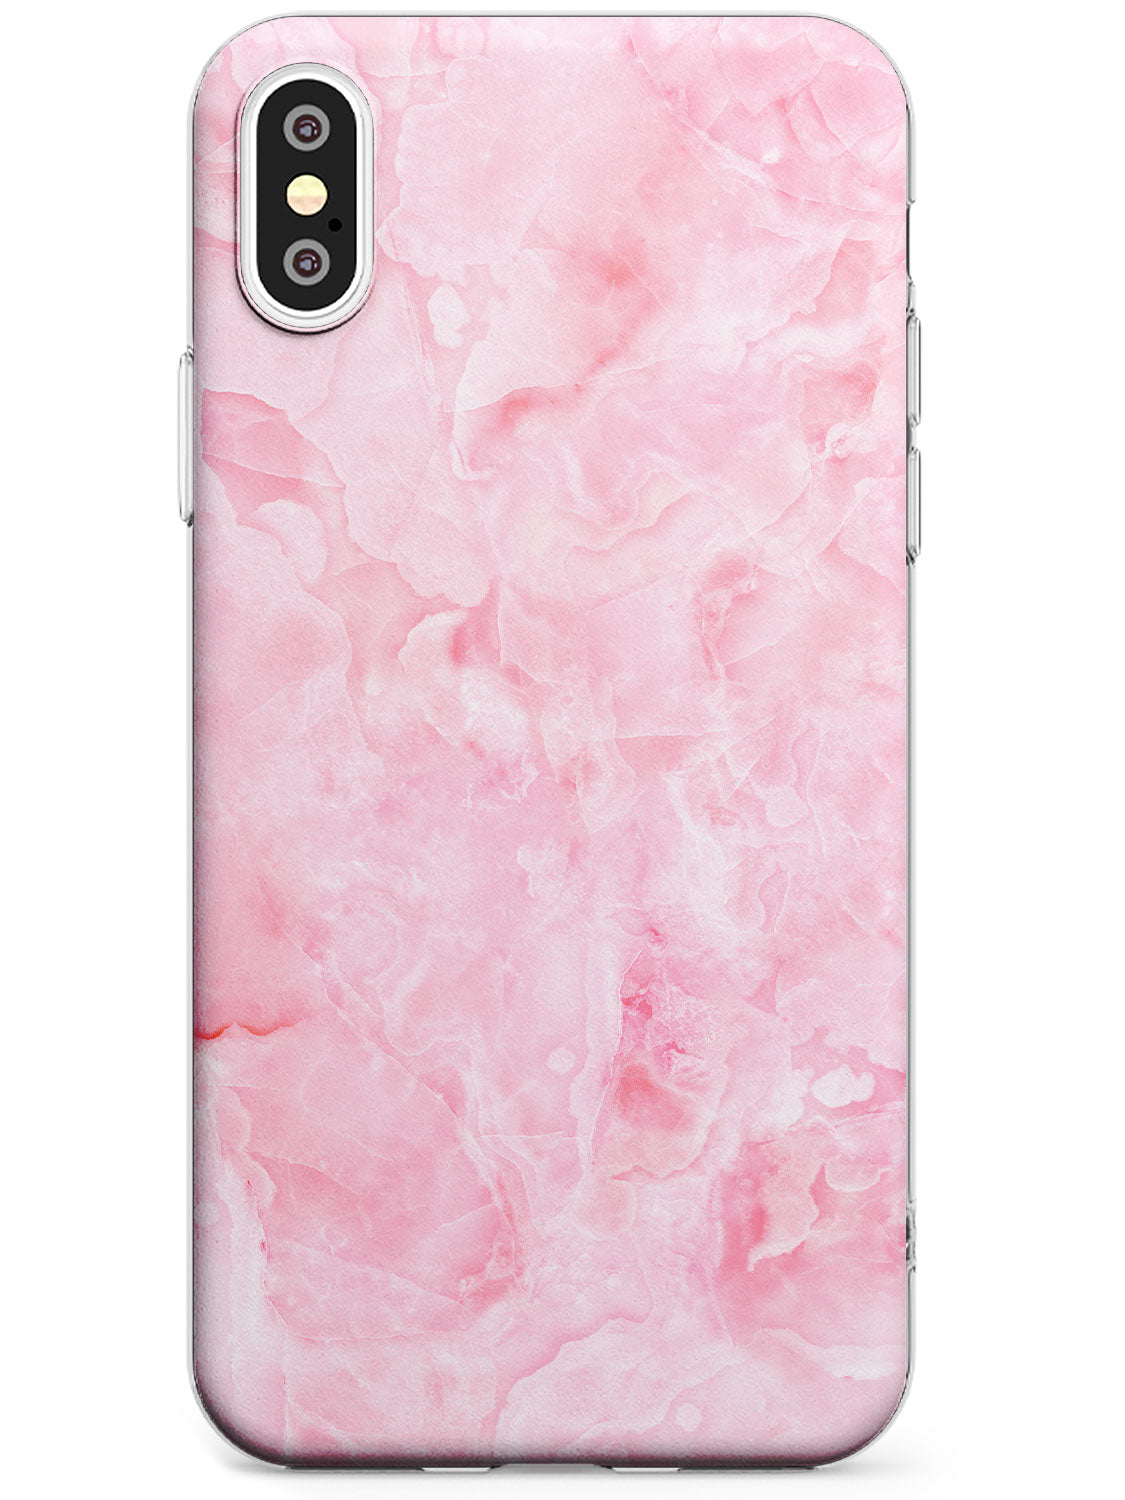 Bright Pink Onyx Marble Texture iPhone Case by Case Warehouse ®